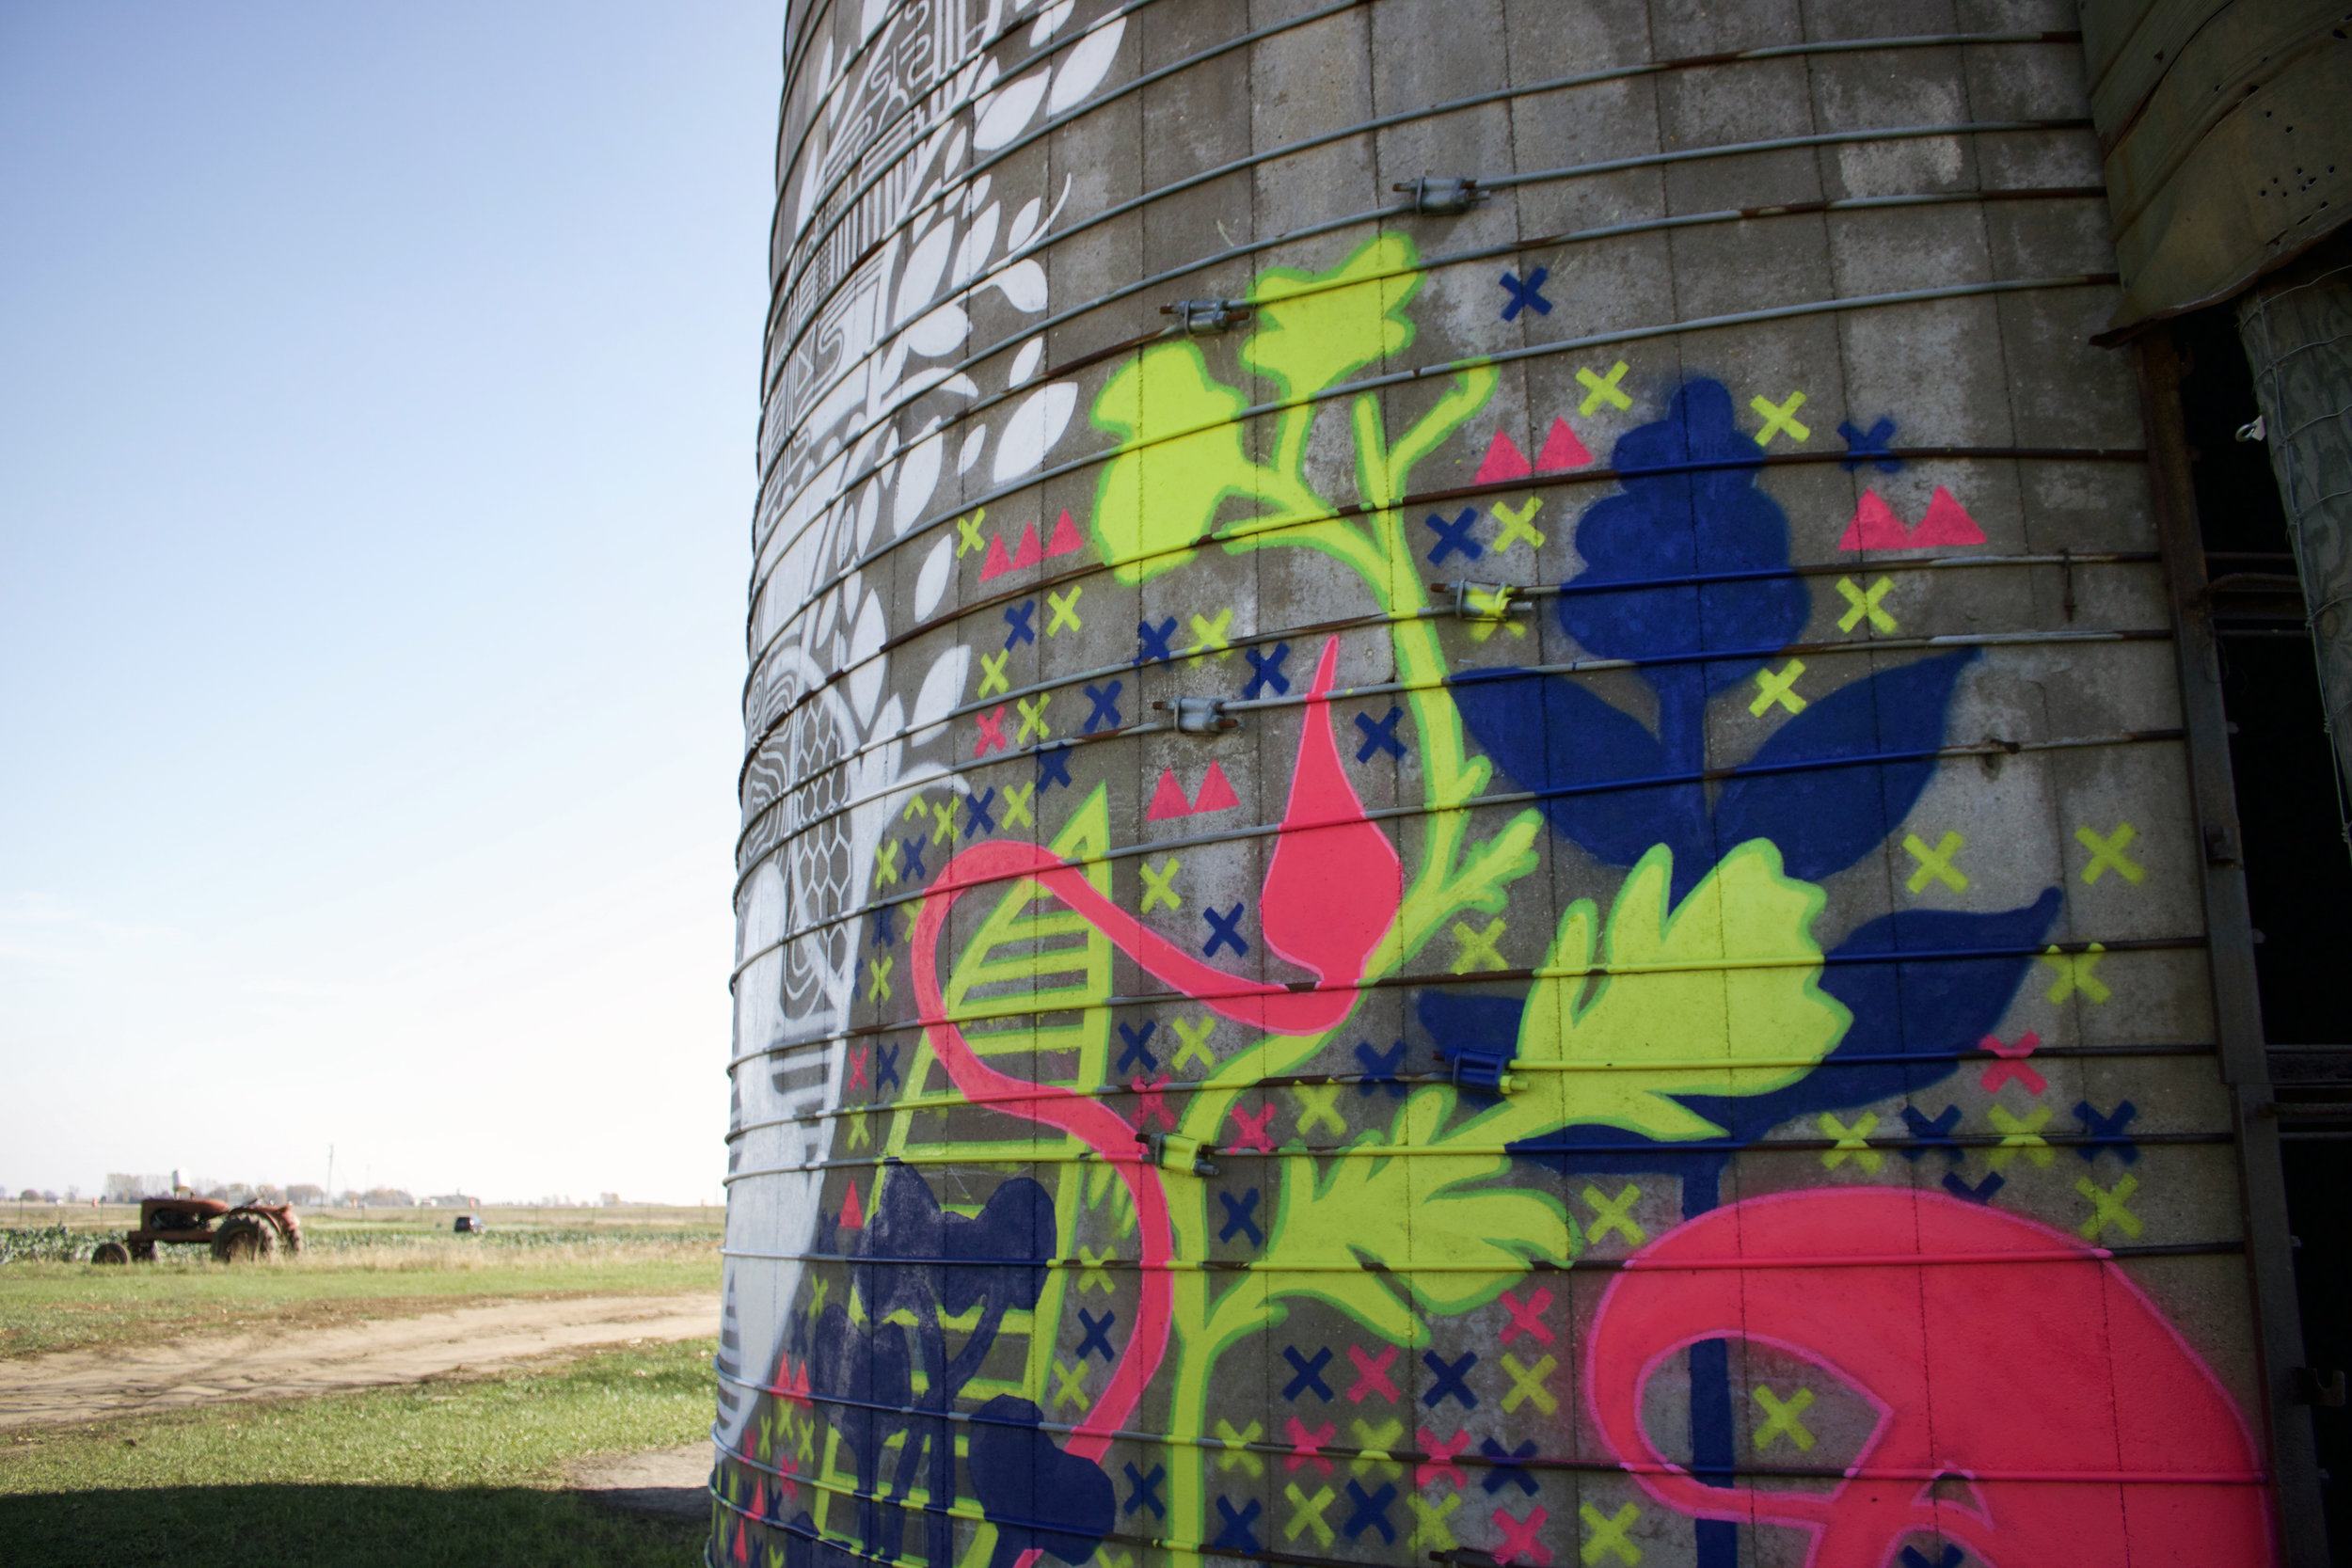 Plant details from the mural located on the HAFA Farm in Hastings, MN.